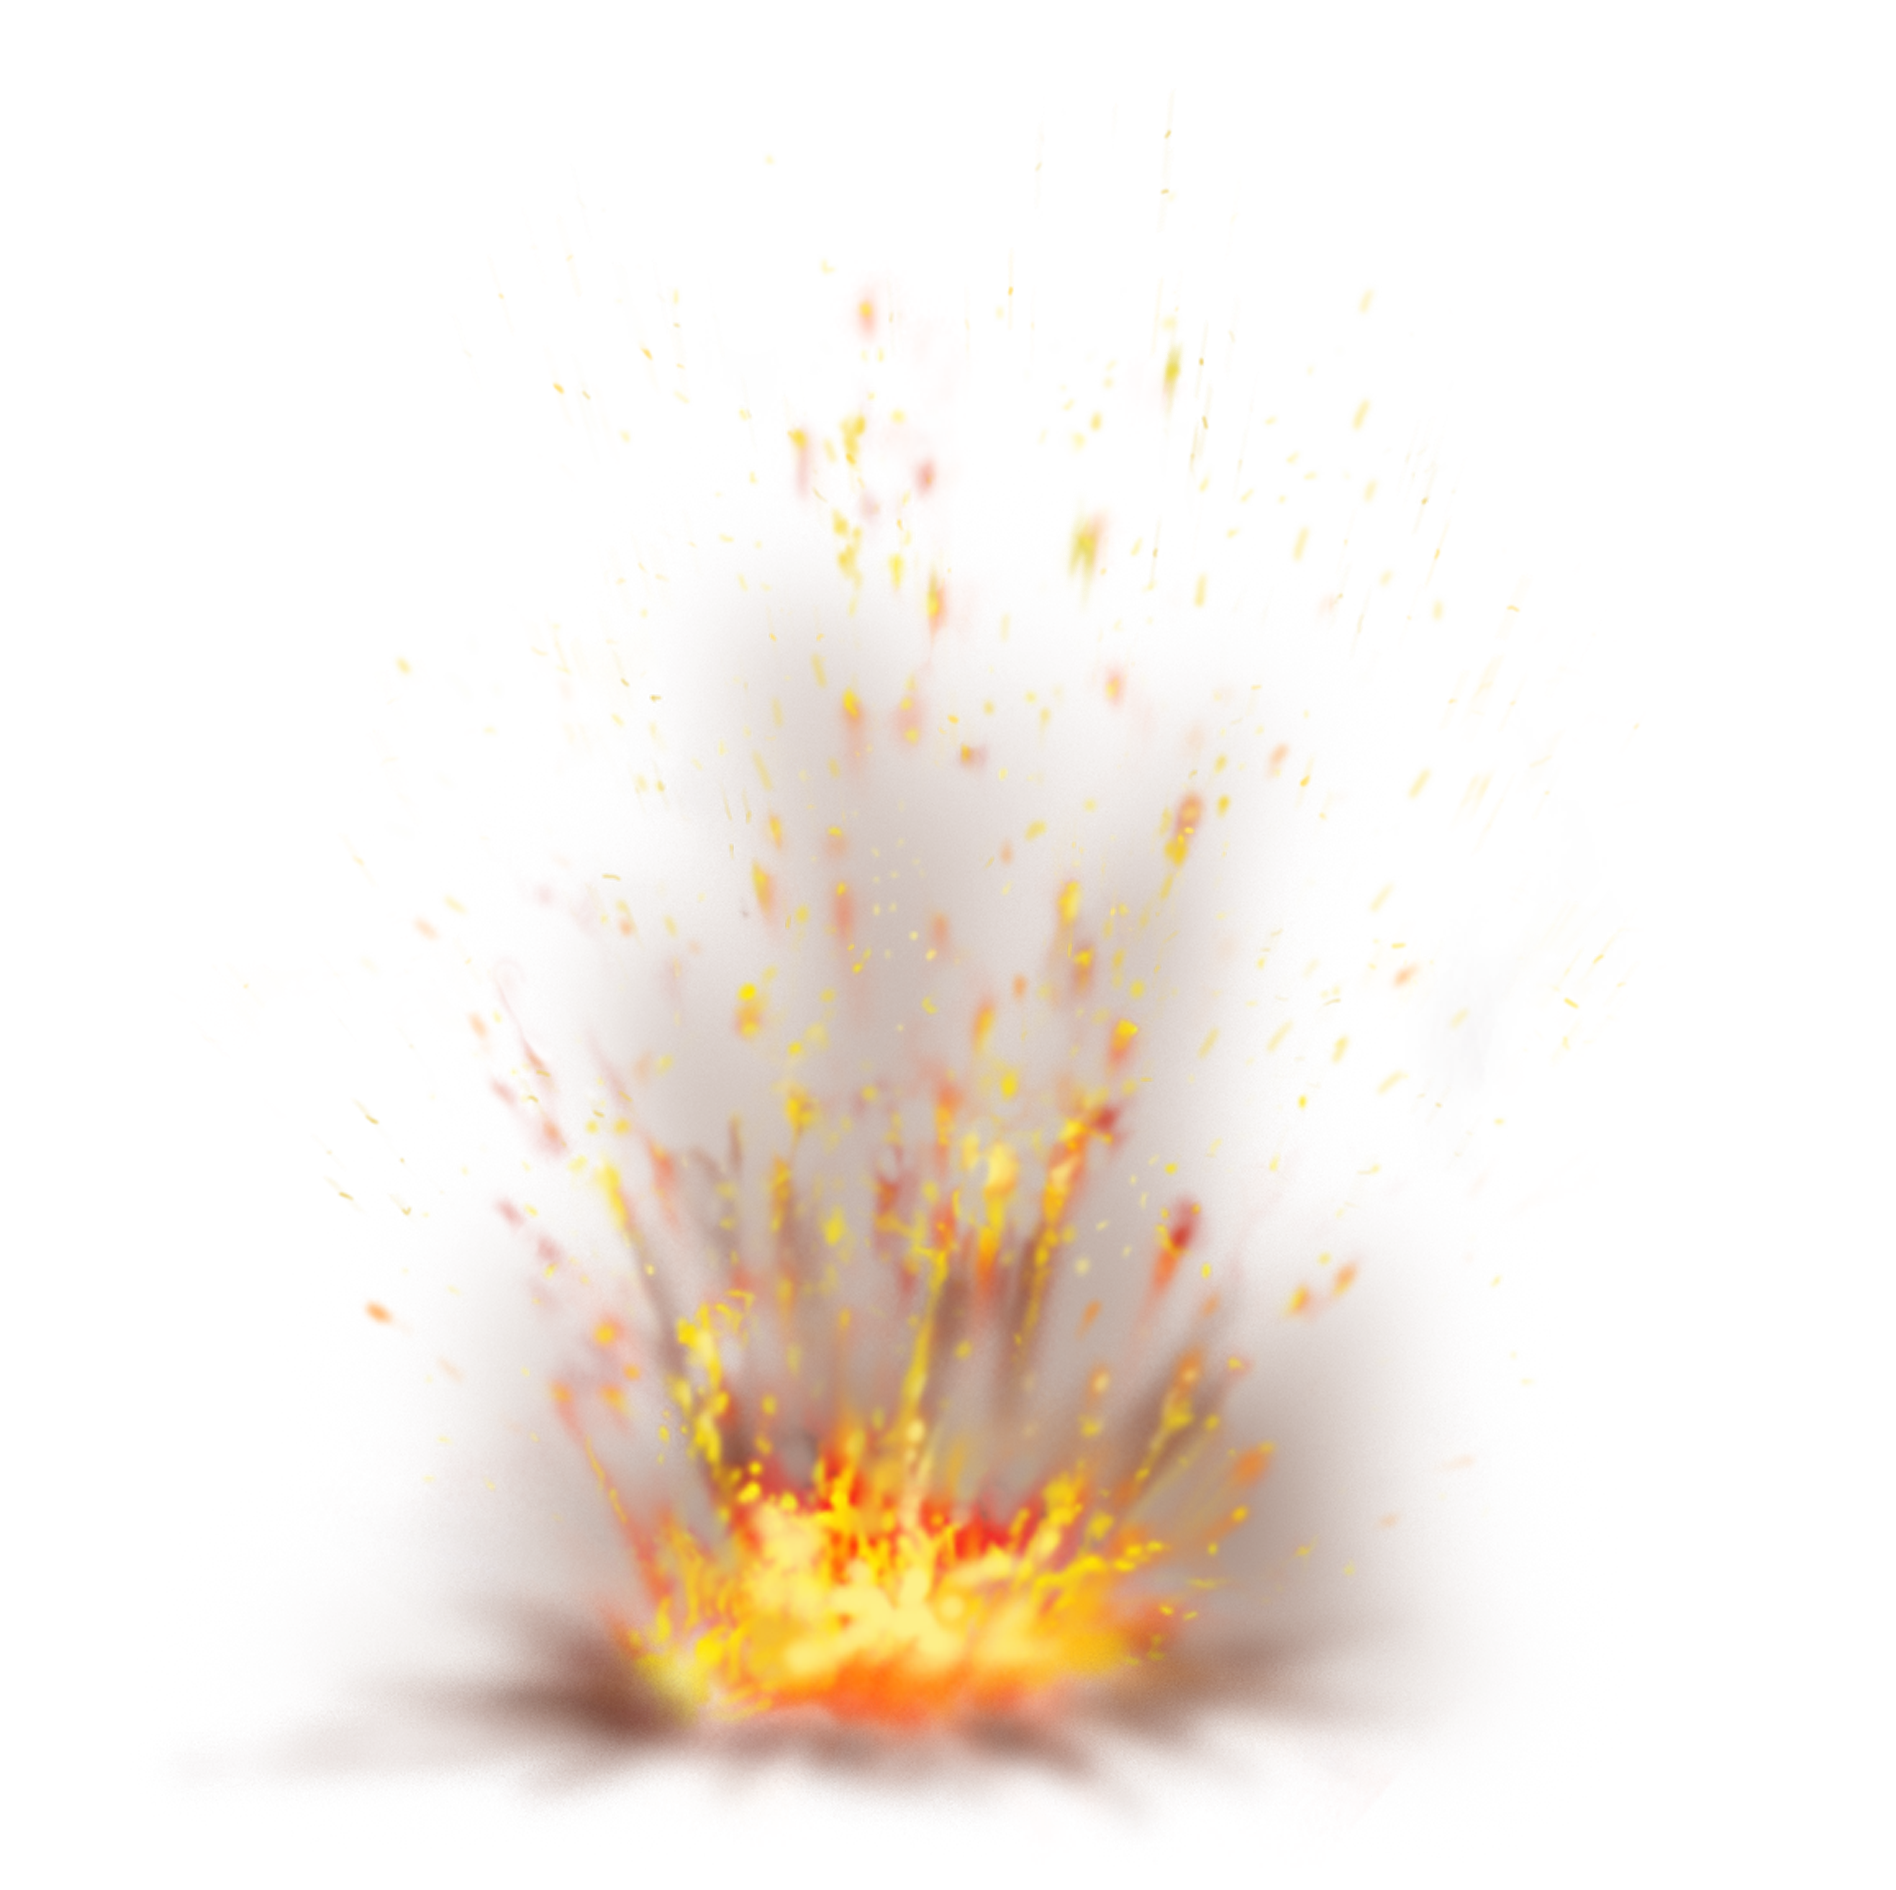 Fire Png Image Fire Png Image Download Number 685 Daily Updated Free Icons And Png Images For Your Projects All Images Use Picsart Png Picsart Fire Image